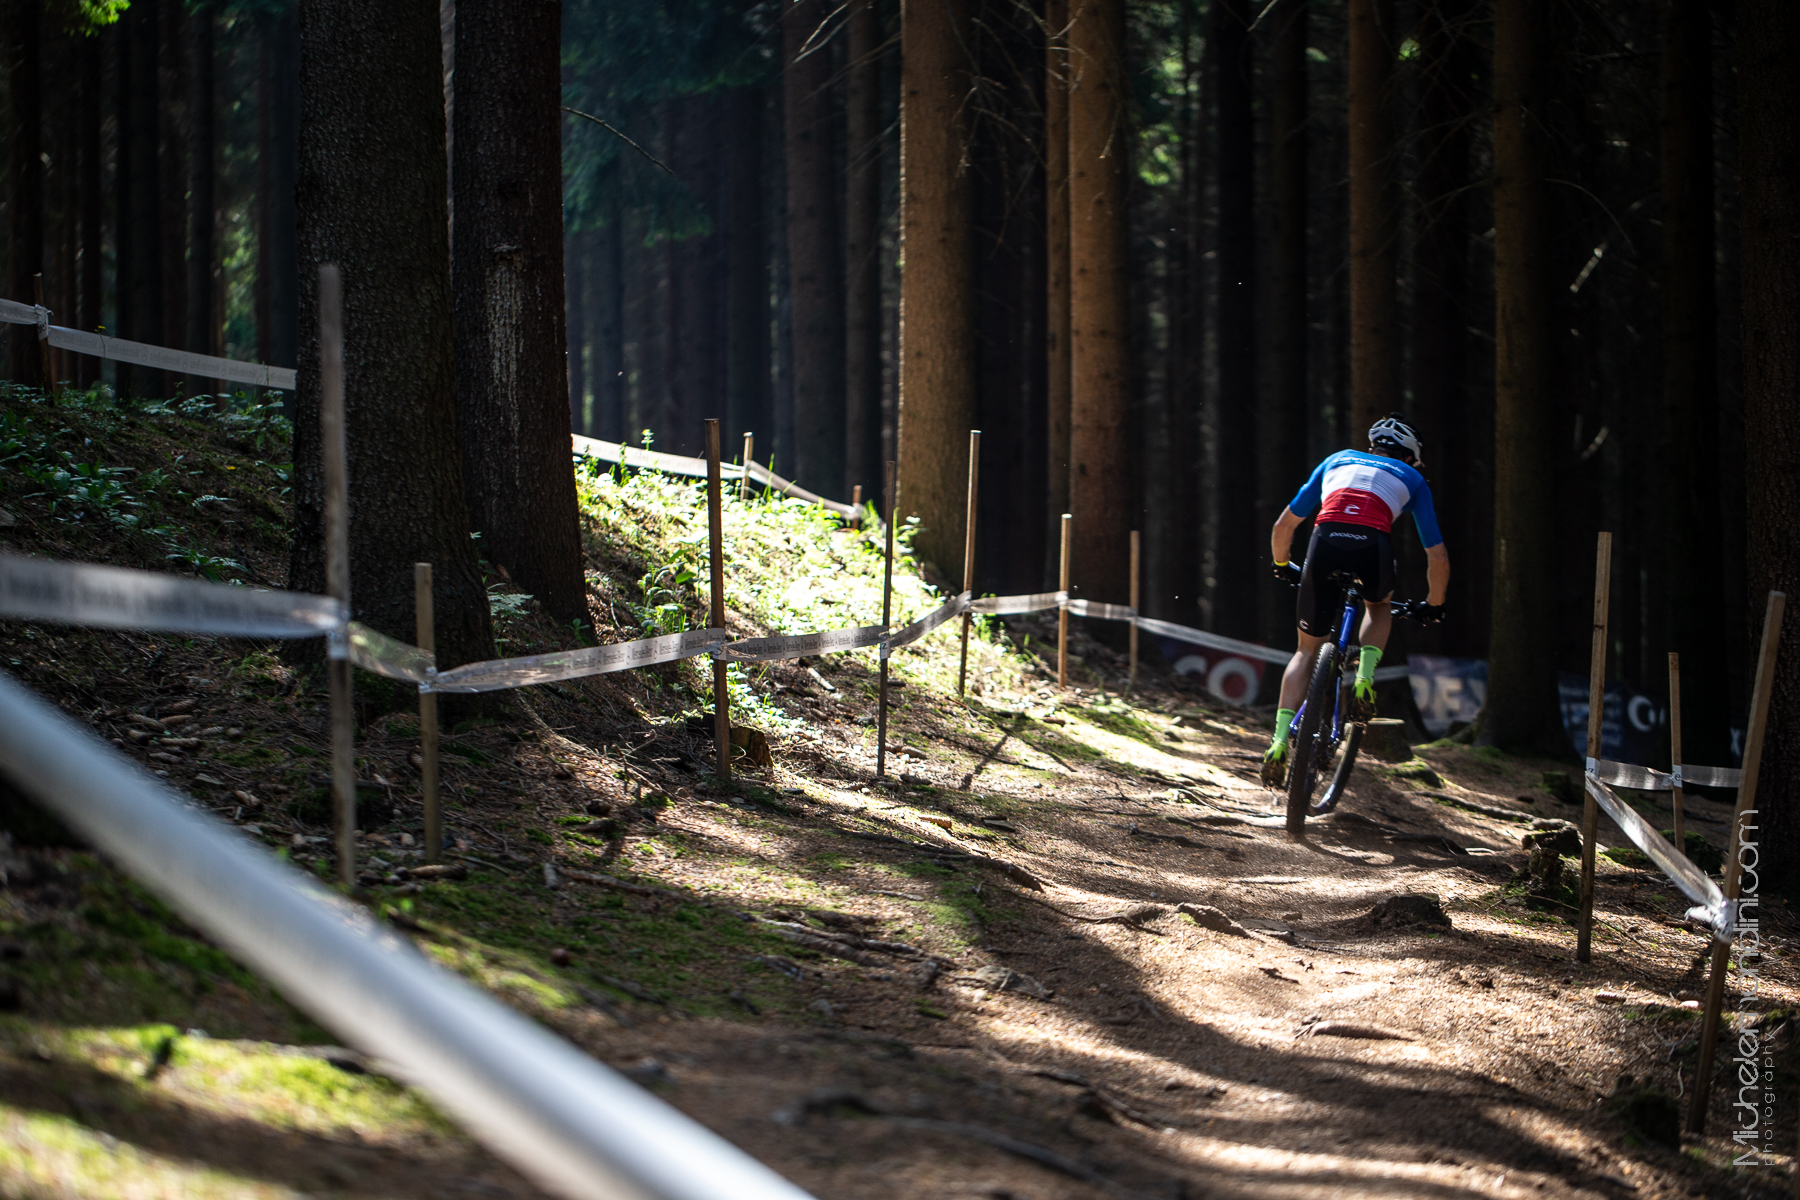 Maxime Marotte trains in Nove Mesto - Ph: Michele Mondini